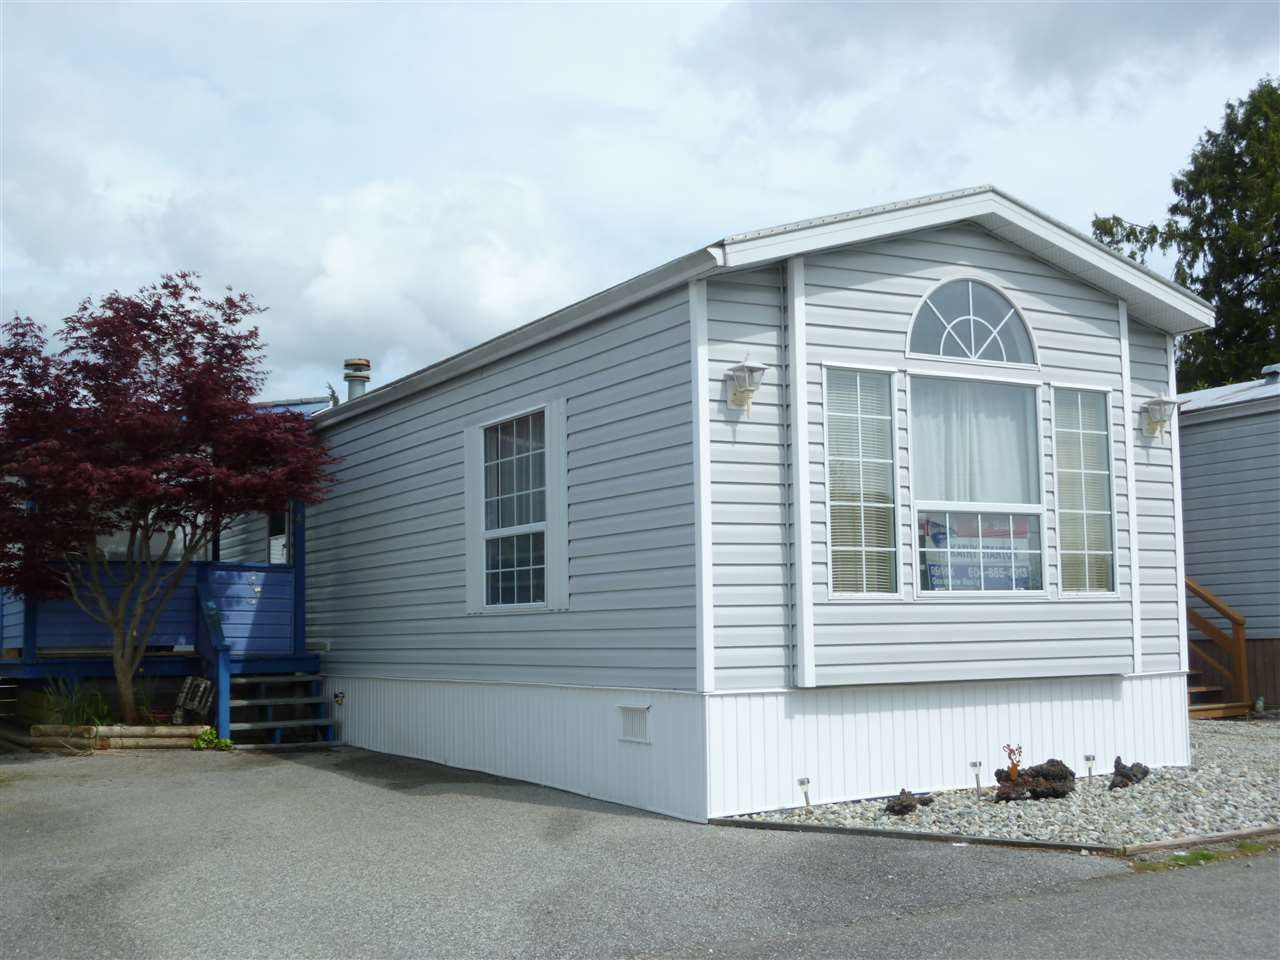 "Main Photo: 14 5575 MASON Road in Sechelt: Sechelt District Manufactured Home for sale in ""MASON RD MOBILE HOME PARK"" (Sunshine Coast)  : MLS®# R2056997"